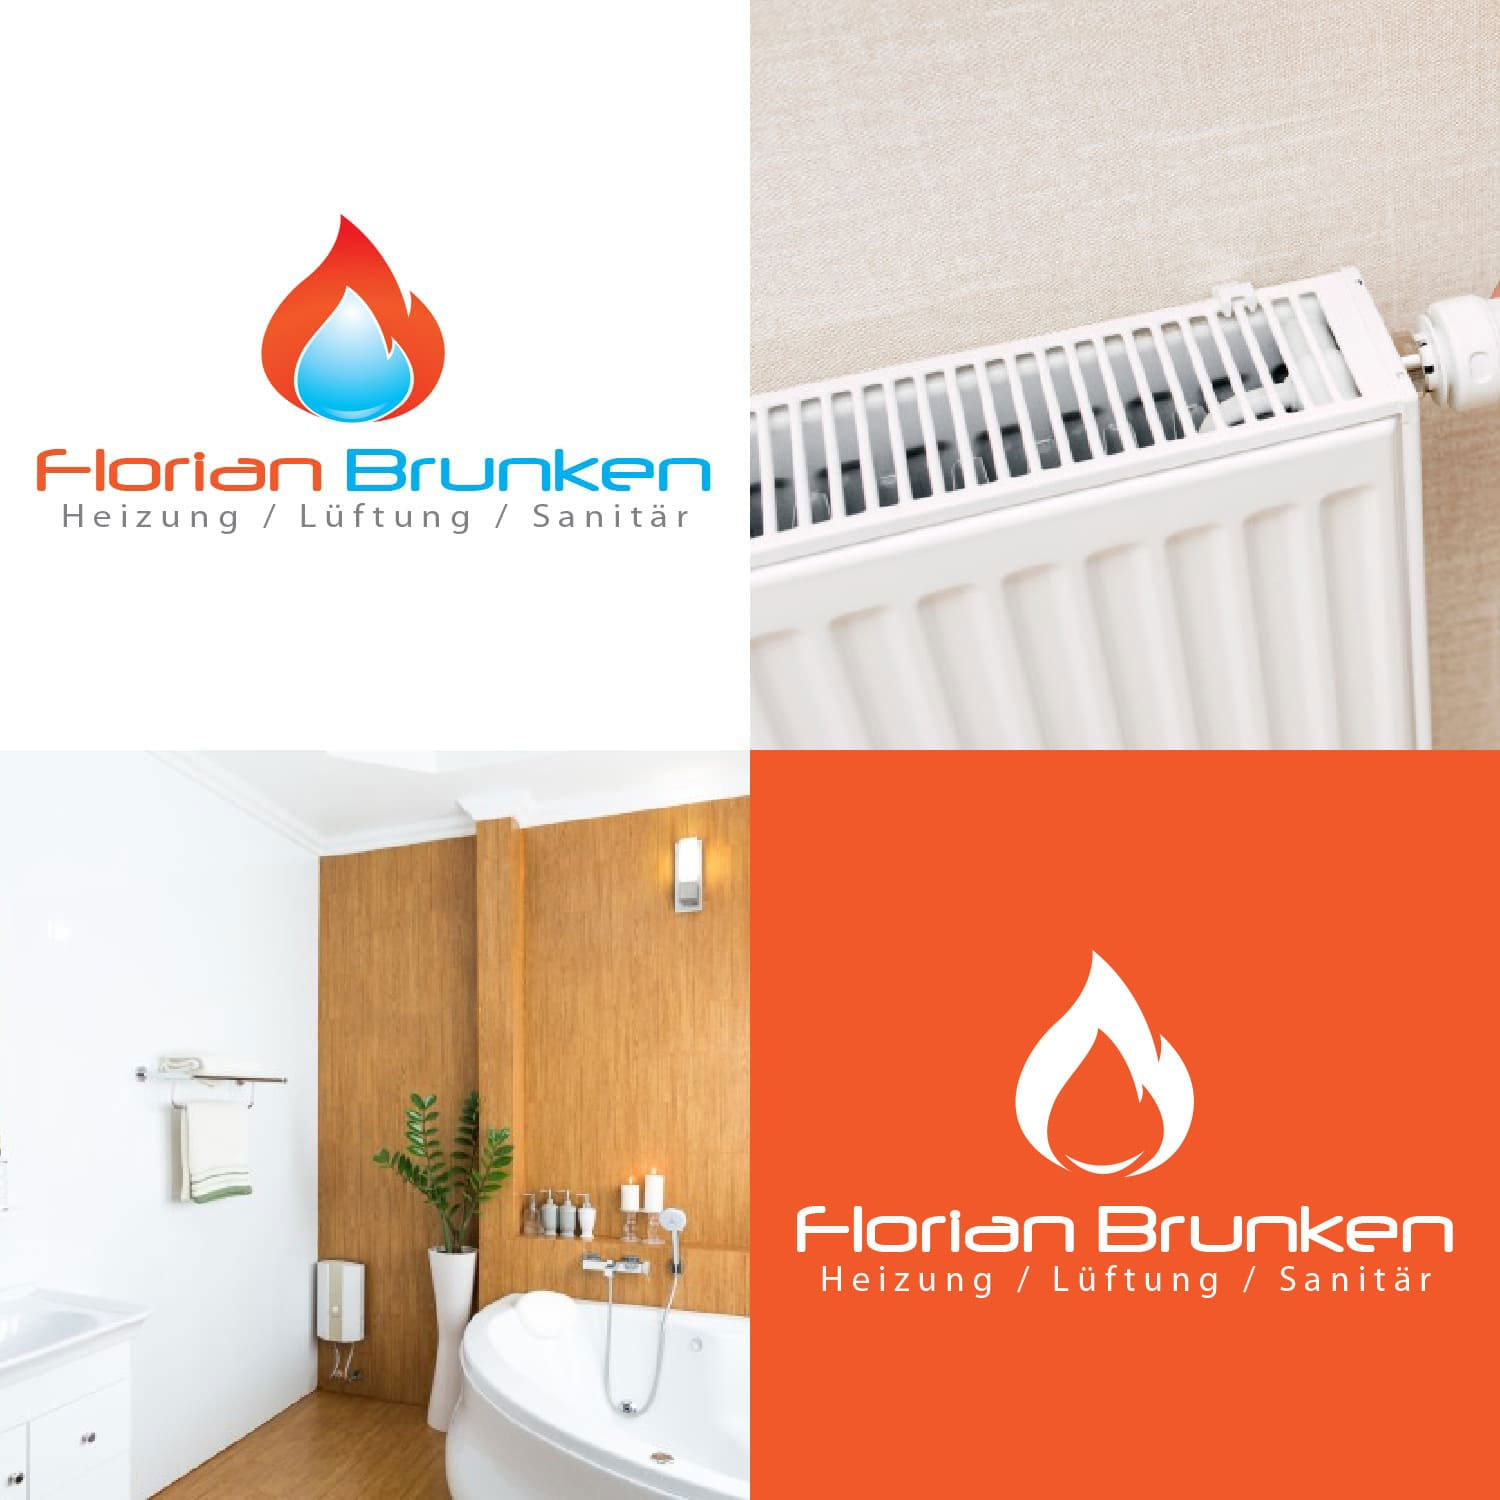 Logodesign Florian Brunken in Ratingen